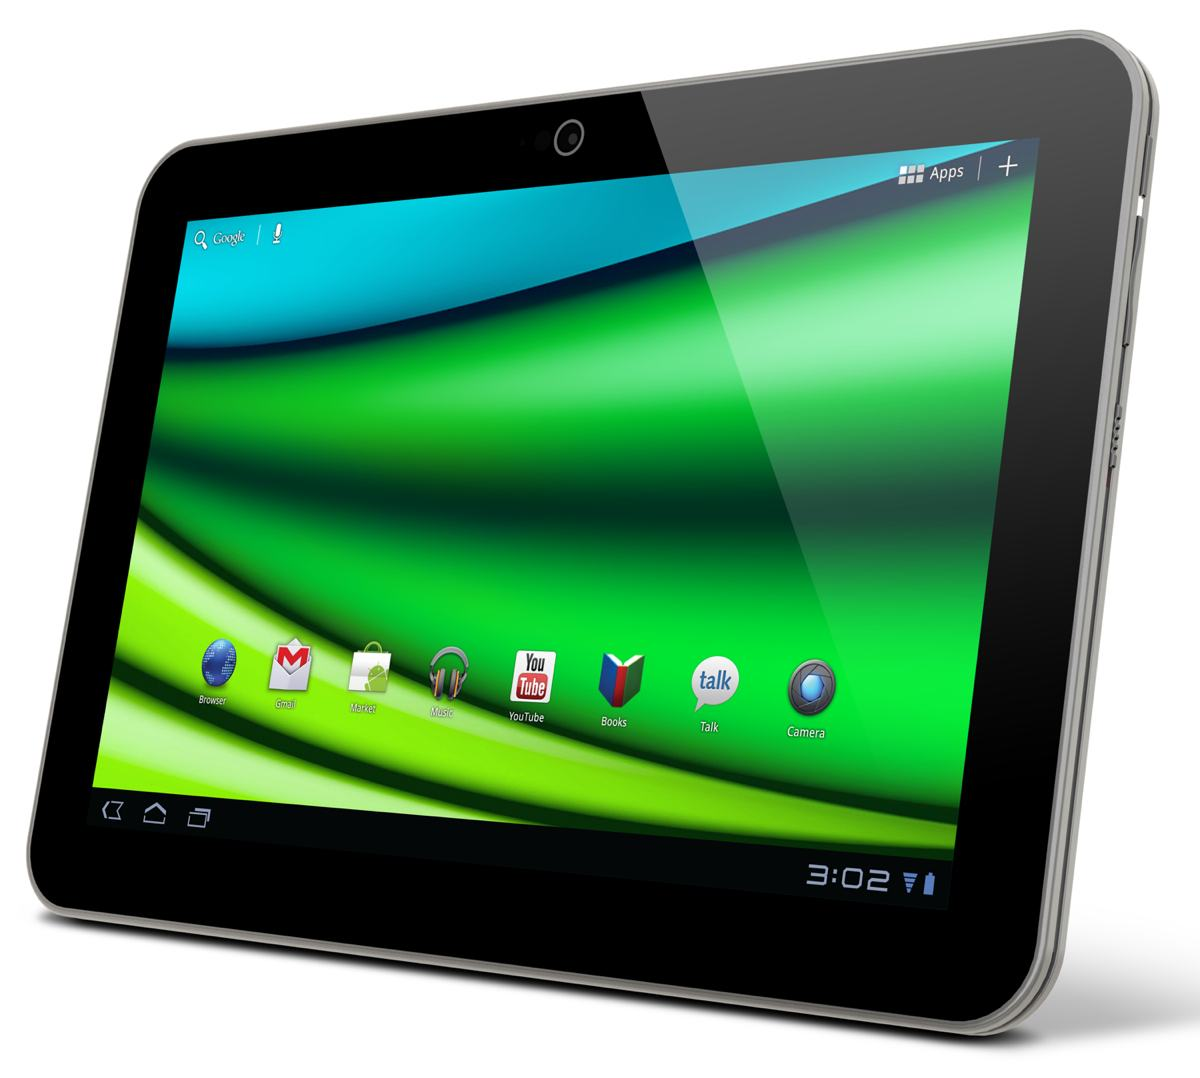 Toshiba Excite 16GB Android 4.0 Tablet Price In Pakistan